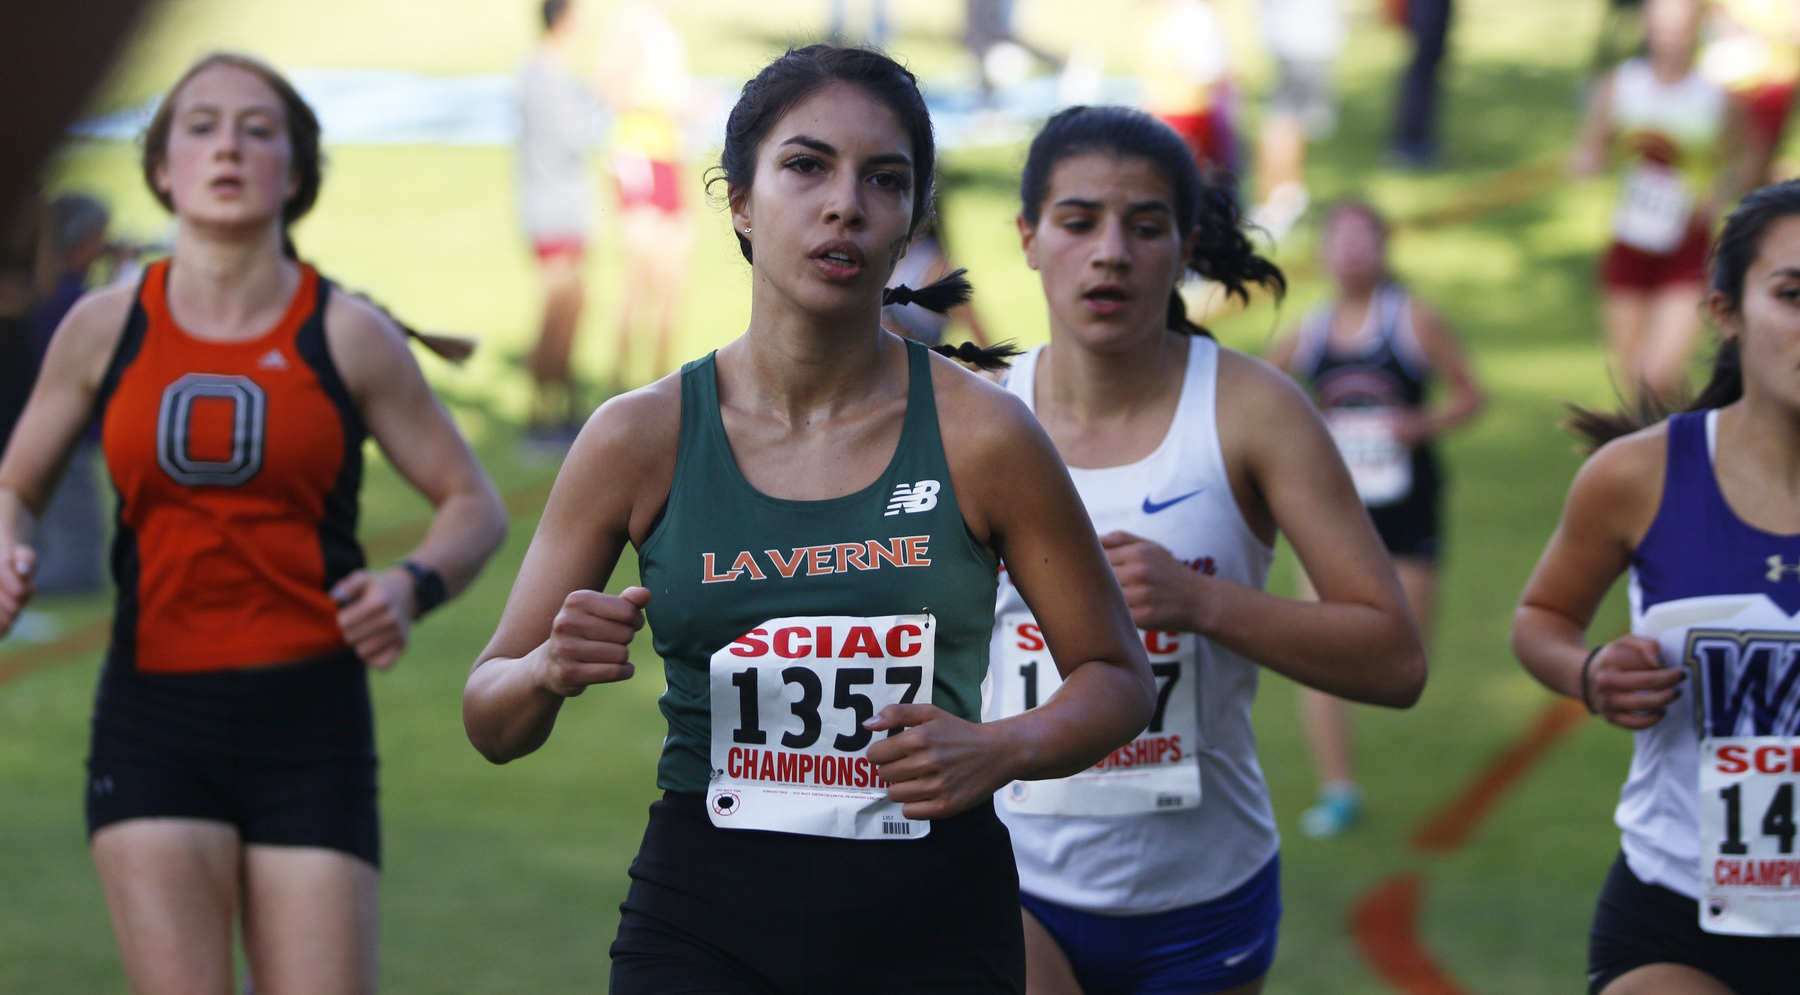 Posada, Pages Lead WXC at SCIAC Championships